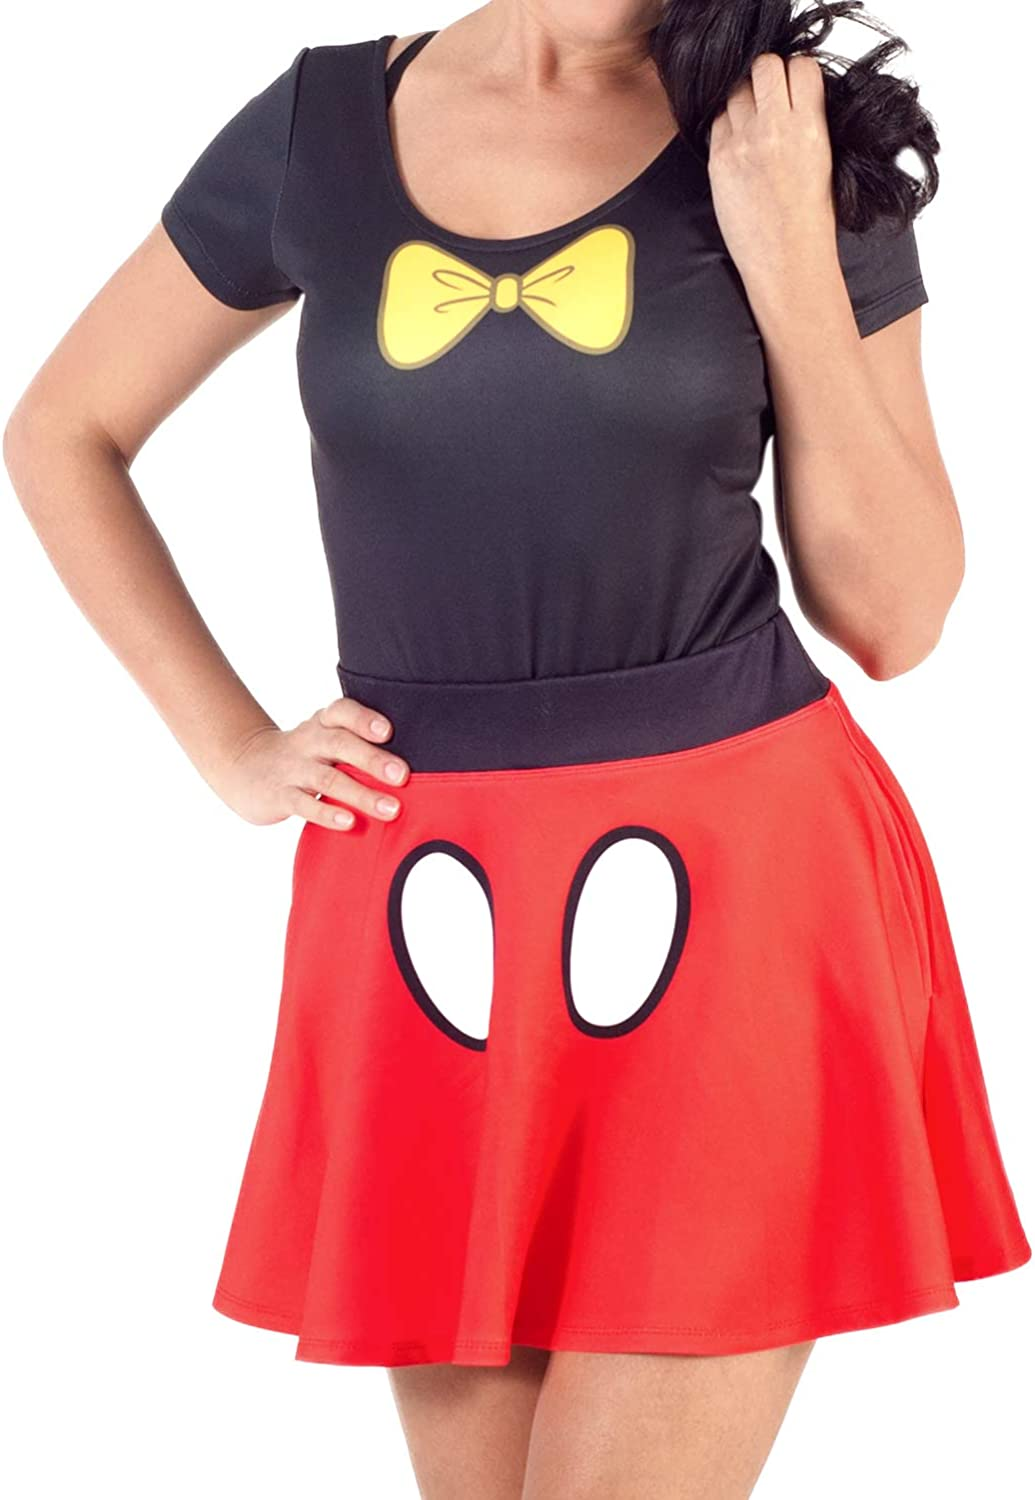 Selling and selling Disney Under blast sales Minnie Mouse Bodysuit and Set Costume Skirt